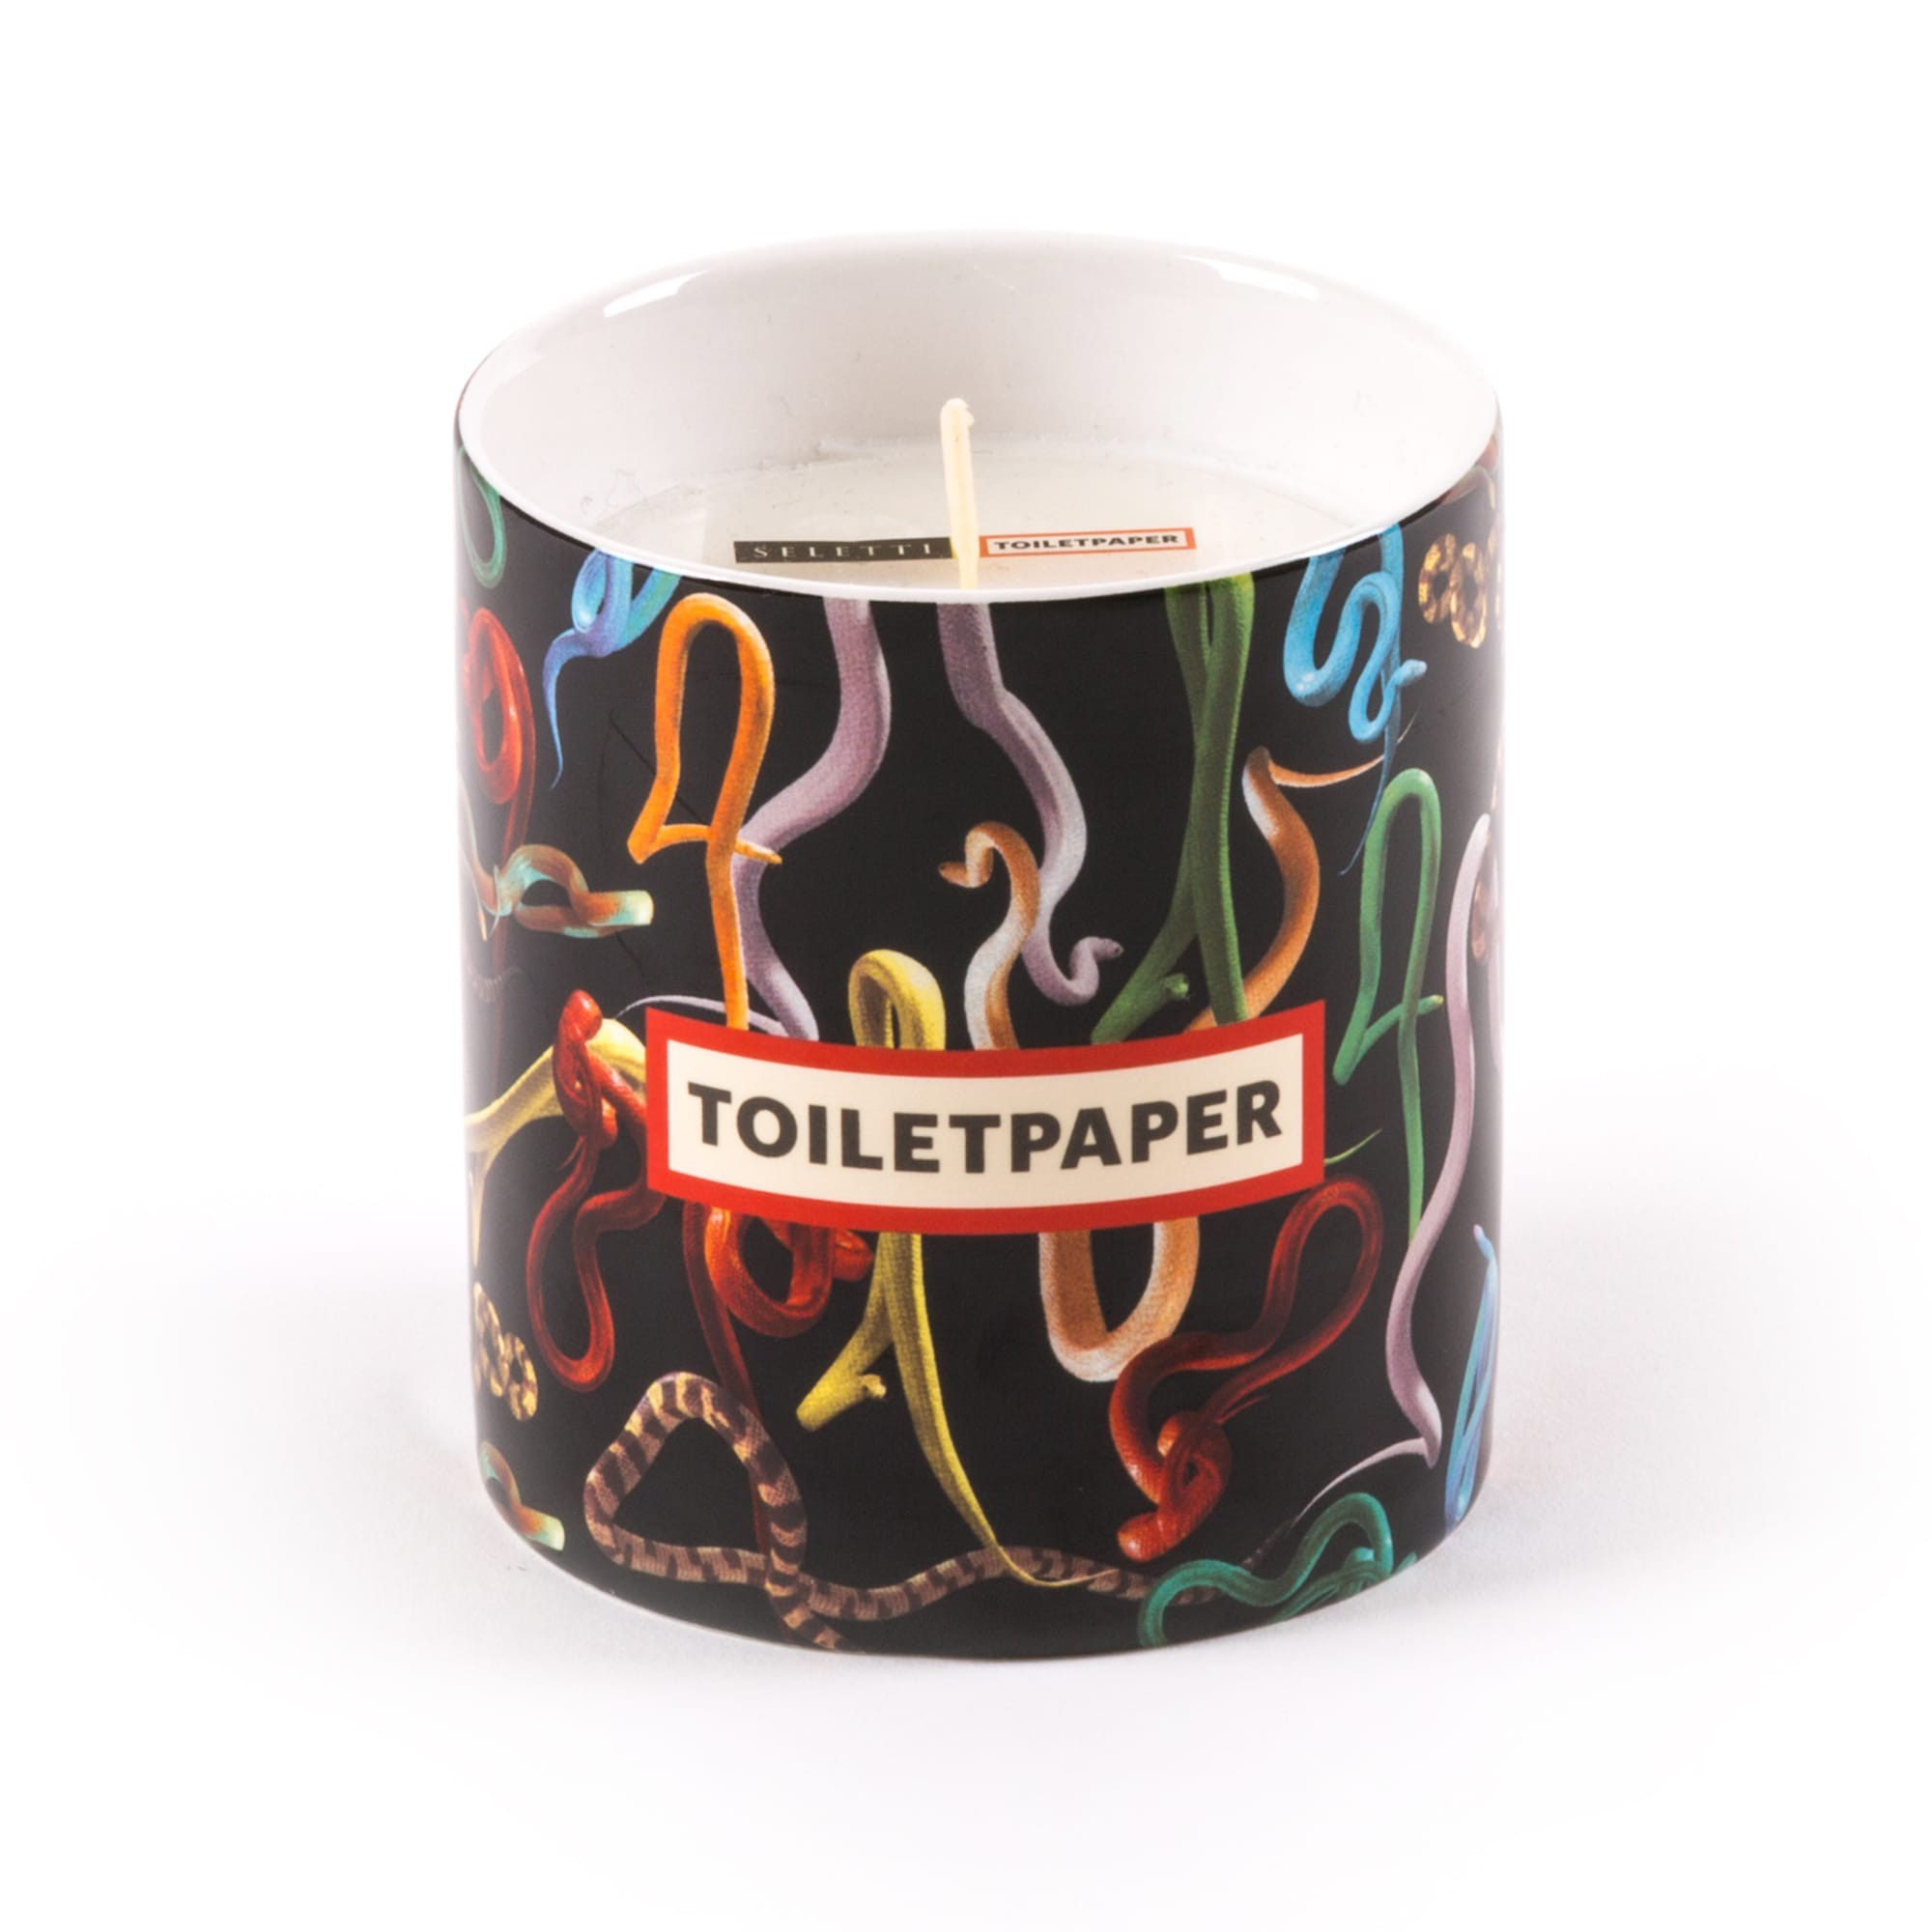 Toiletpaper Candle Snakes